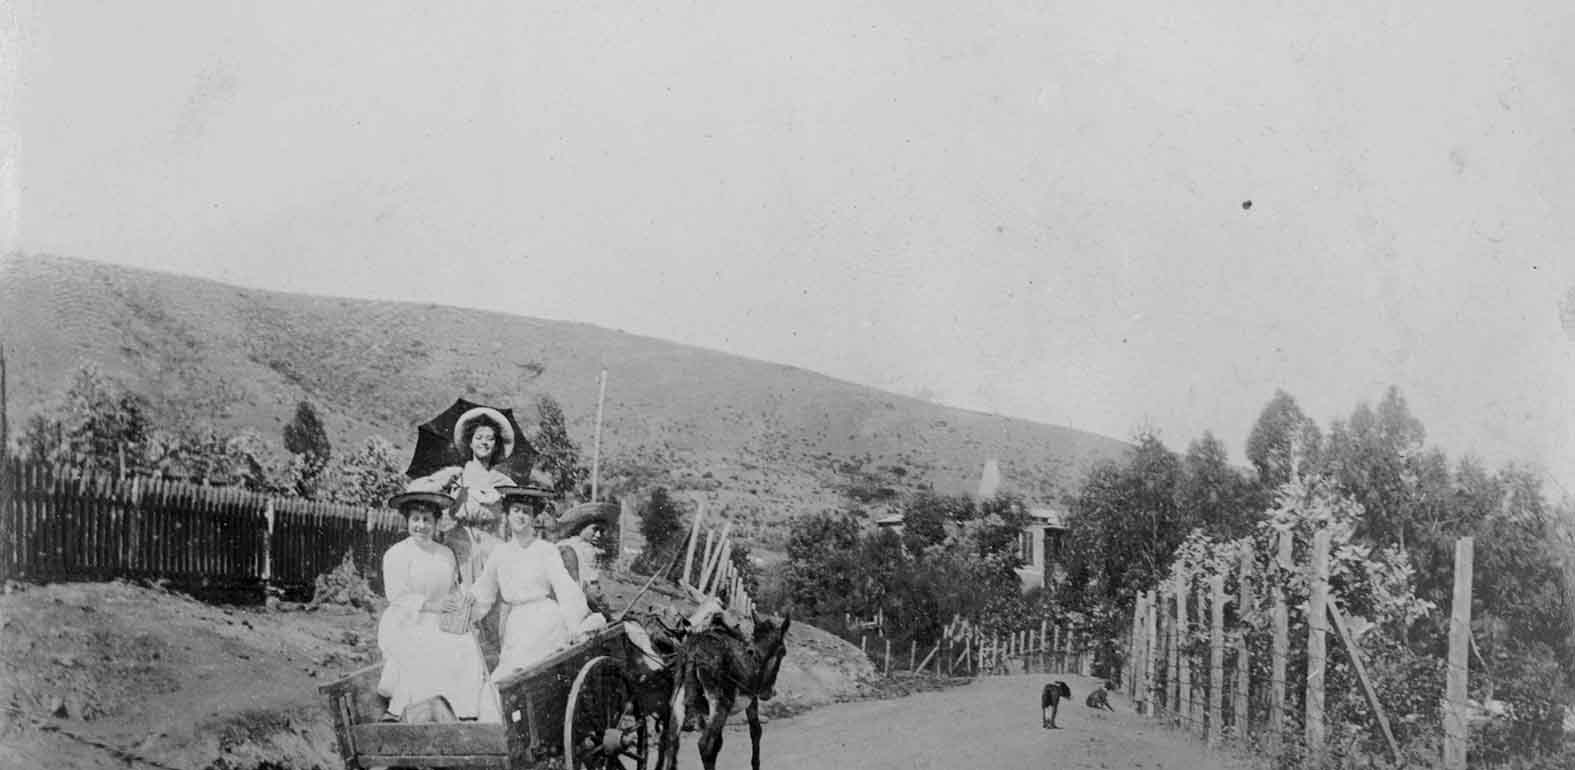 Enterreno - Fotos históricas de chile - fotos antiguas de Chile - Lugar desconocido en 1904